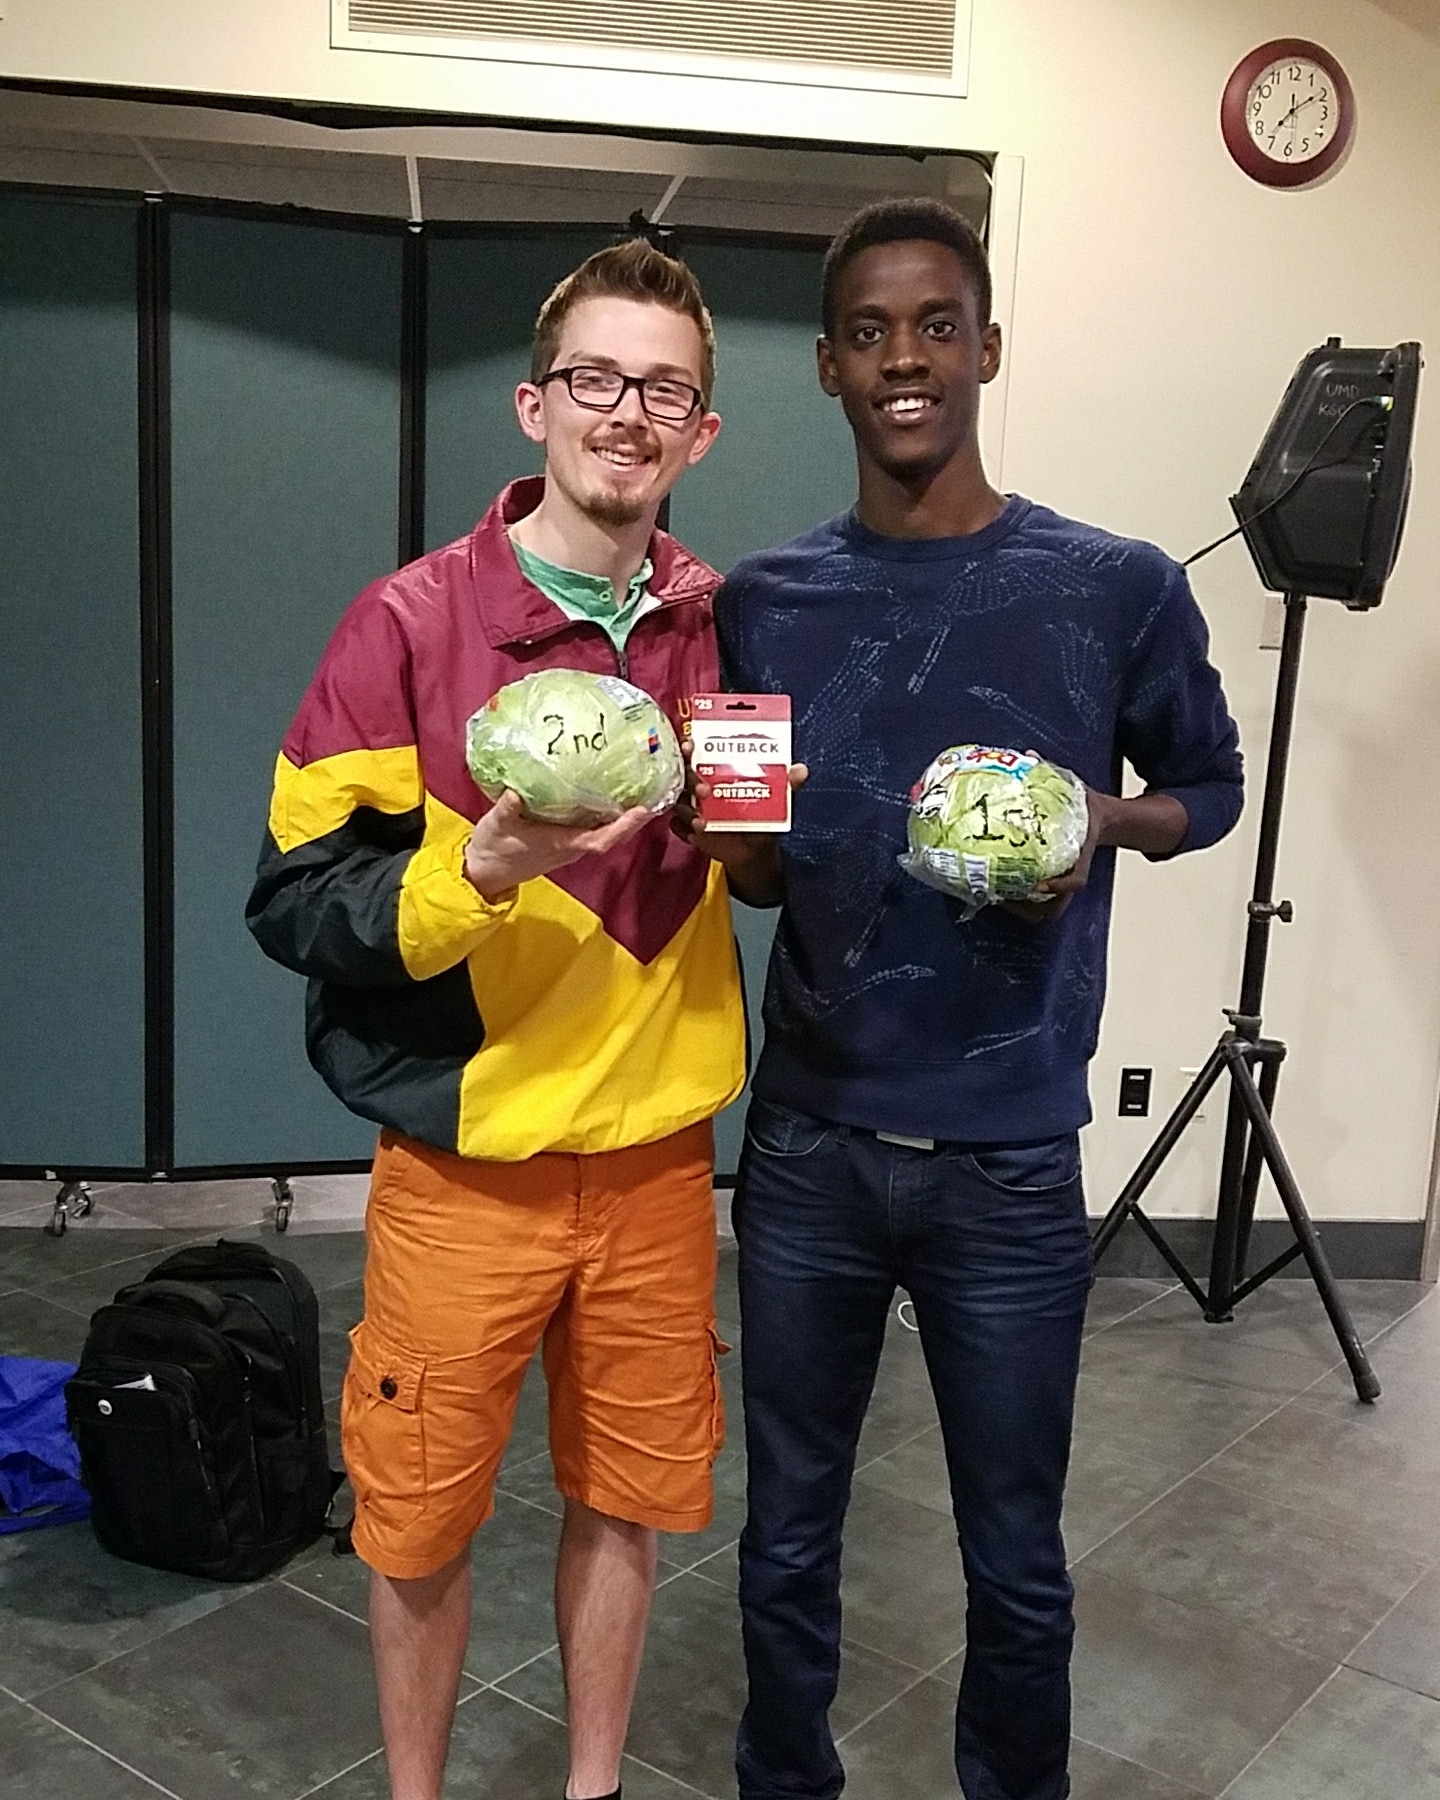 Andrew Weisz (left), second place winner of last year's Lettuce Club eating competition, and Kofi Austin (right), winner of last year's competition, on April 27, 2018. Austin is no longer a UMD student so the title, Head of Lettuce, went to Weisz. Photo courtesy of Austin Weisz